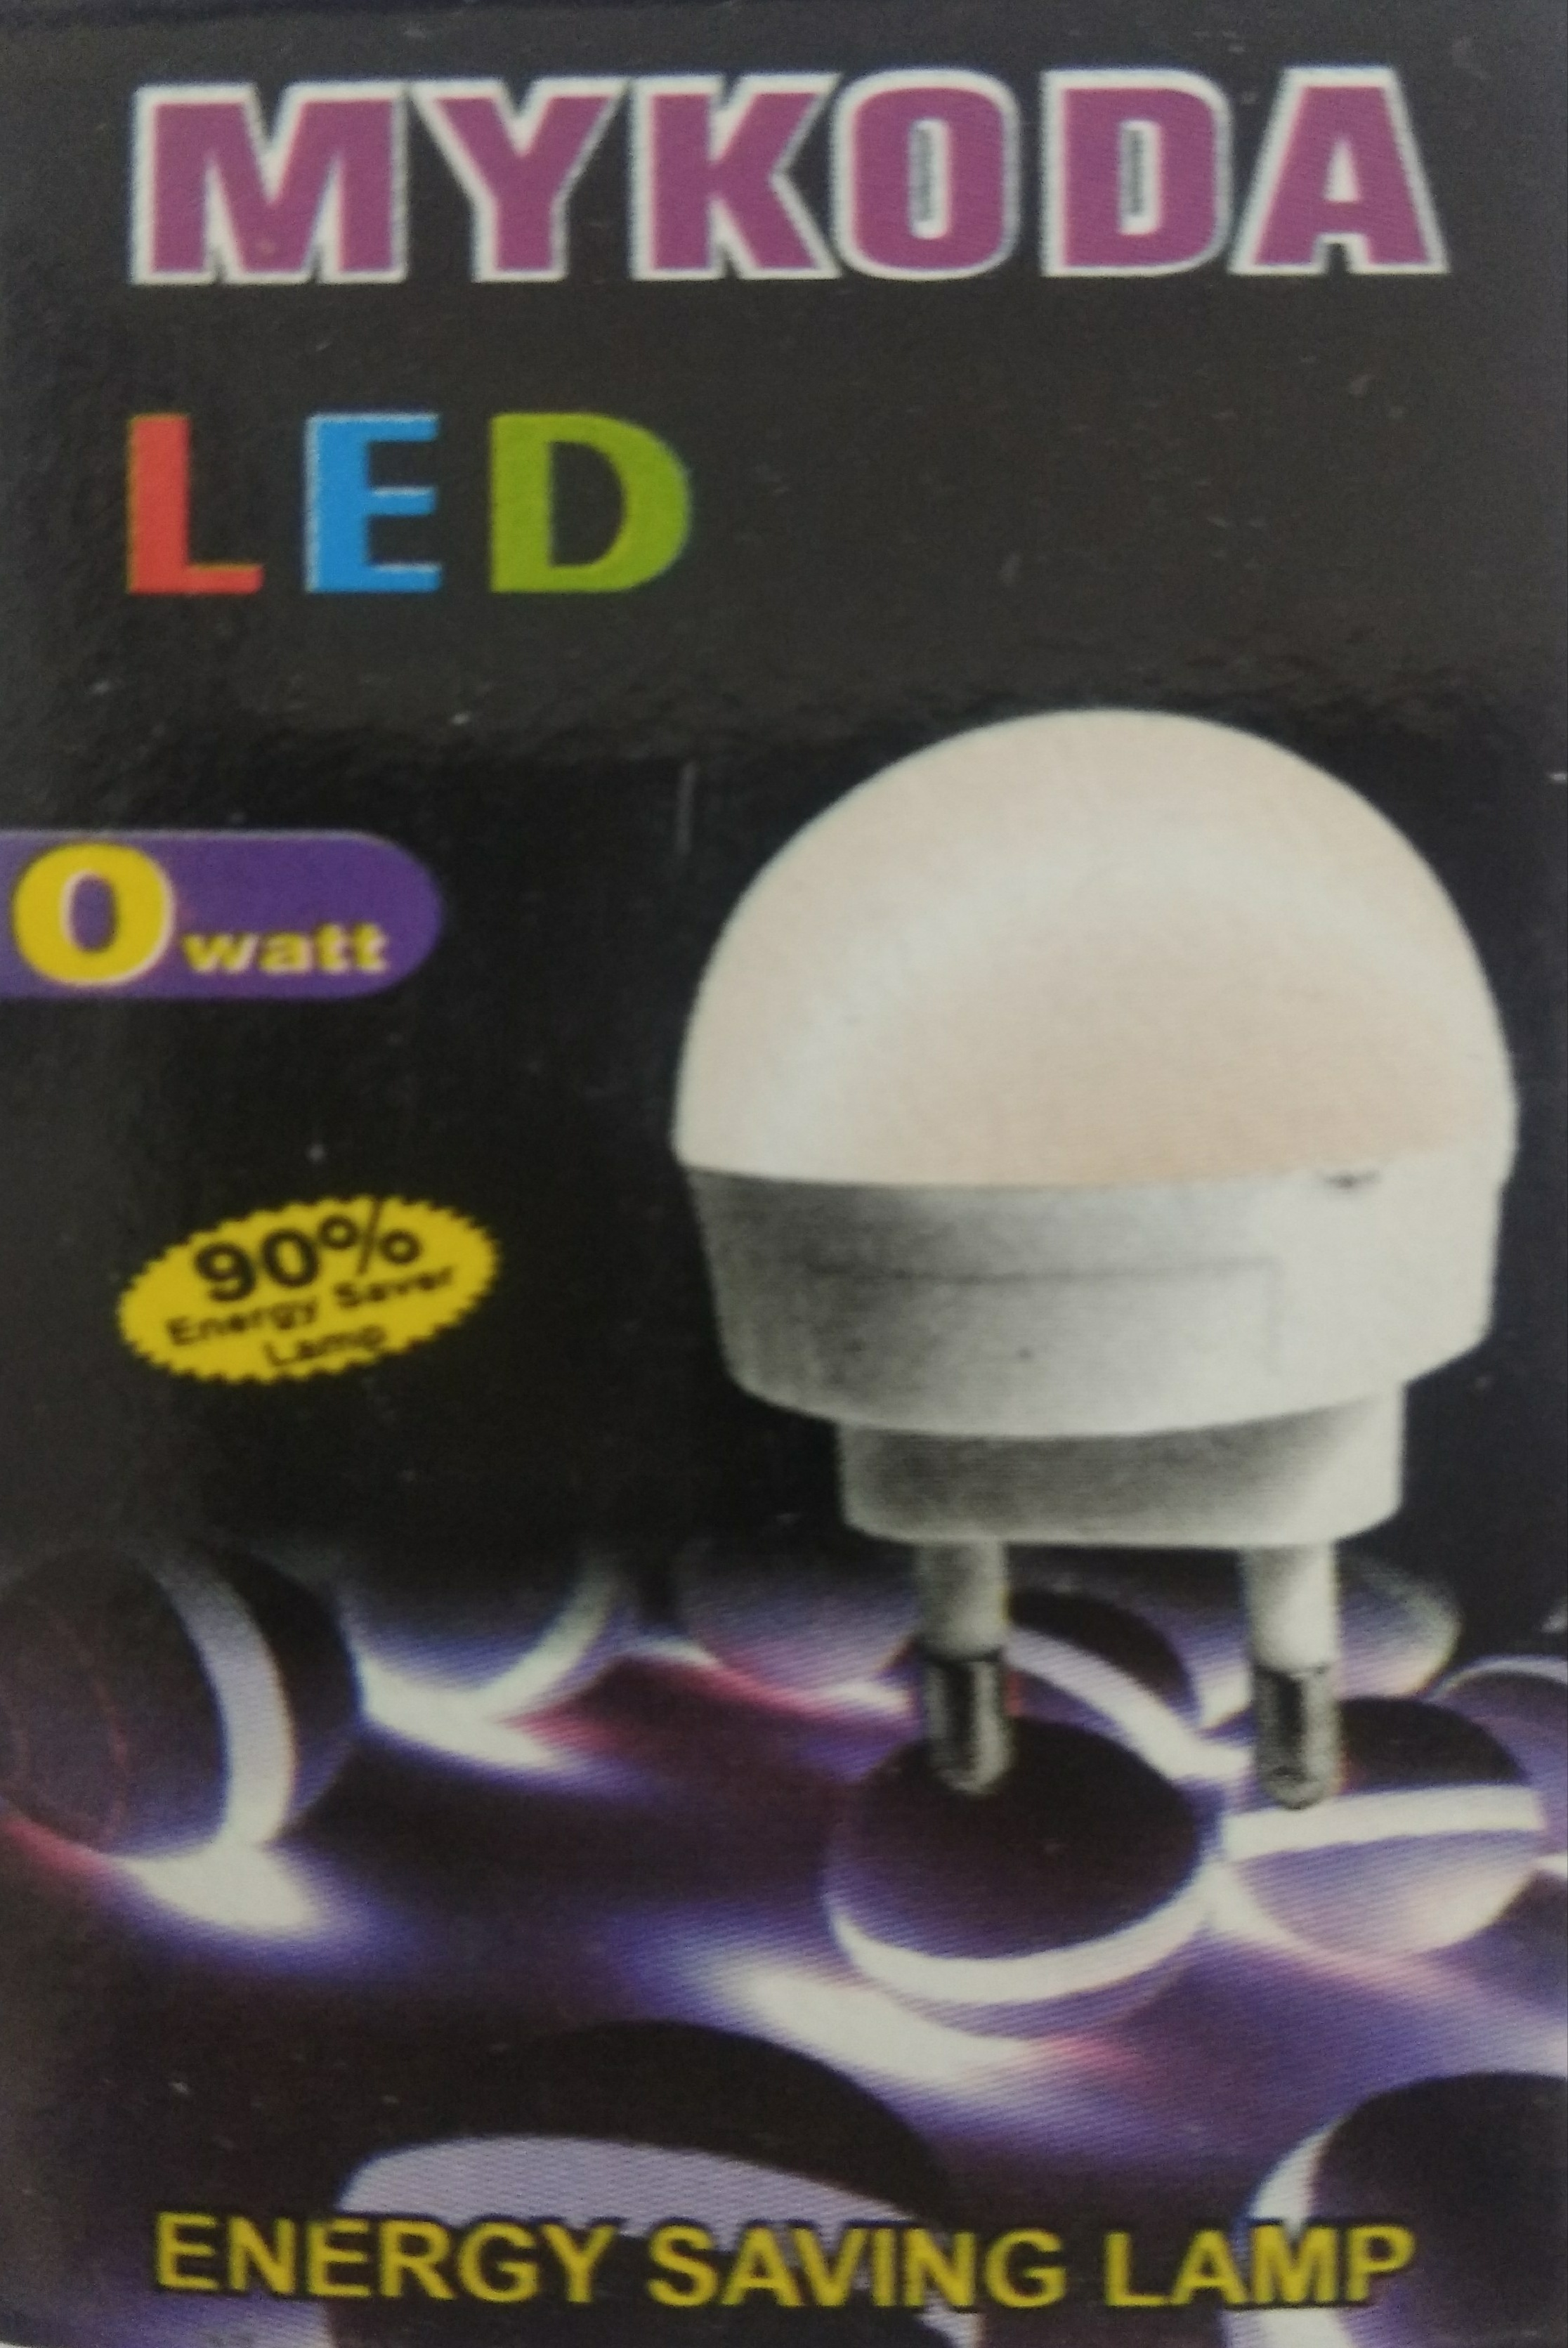 Plug and play LED